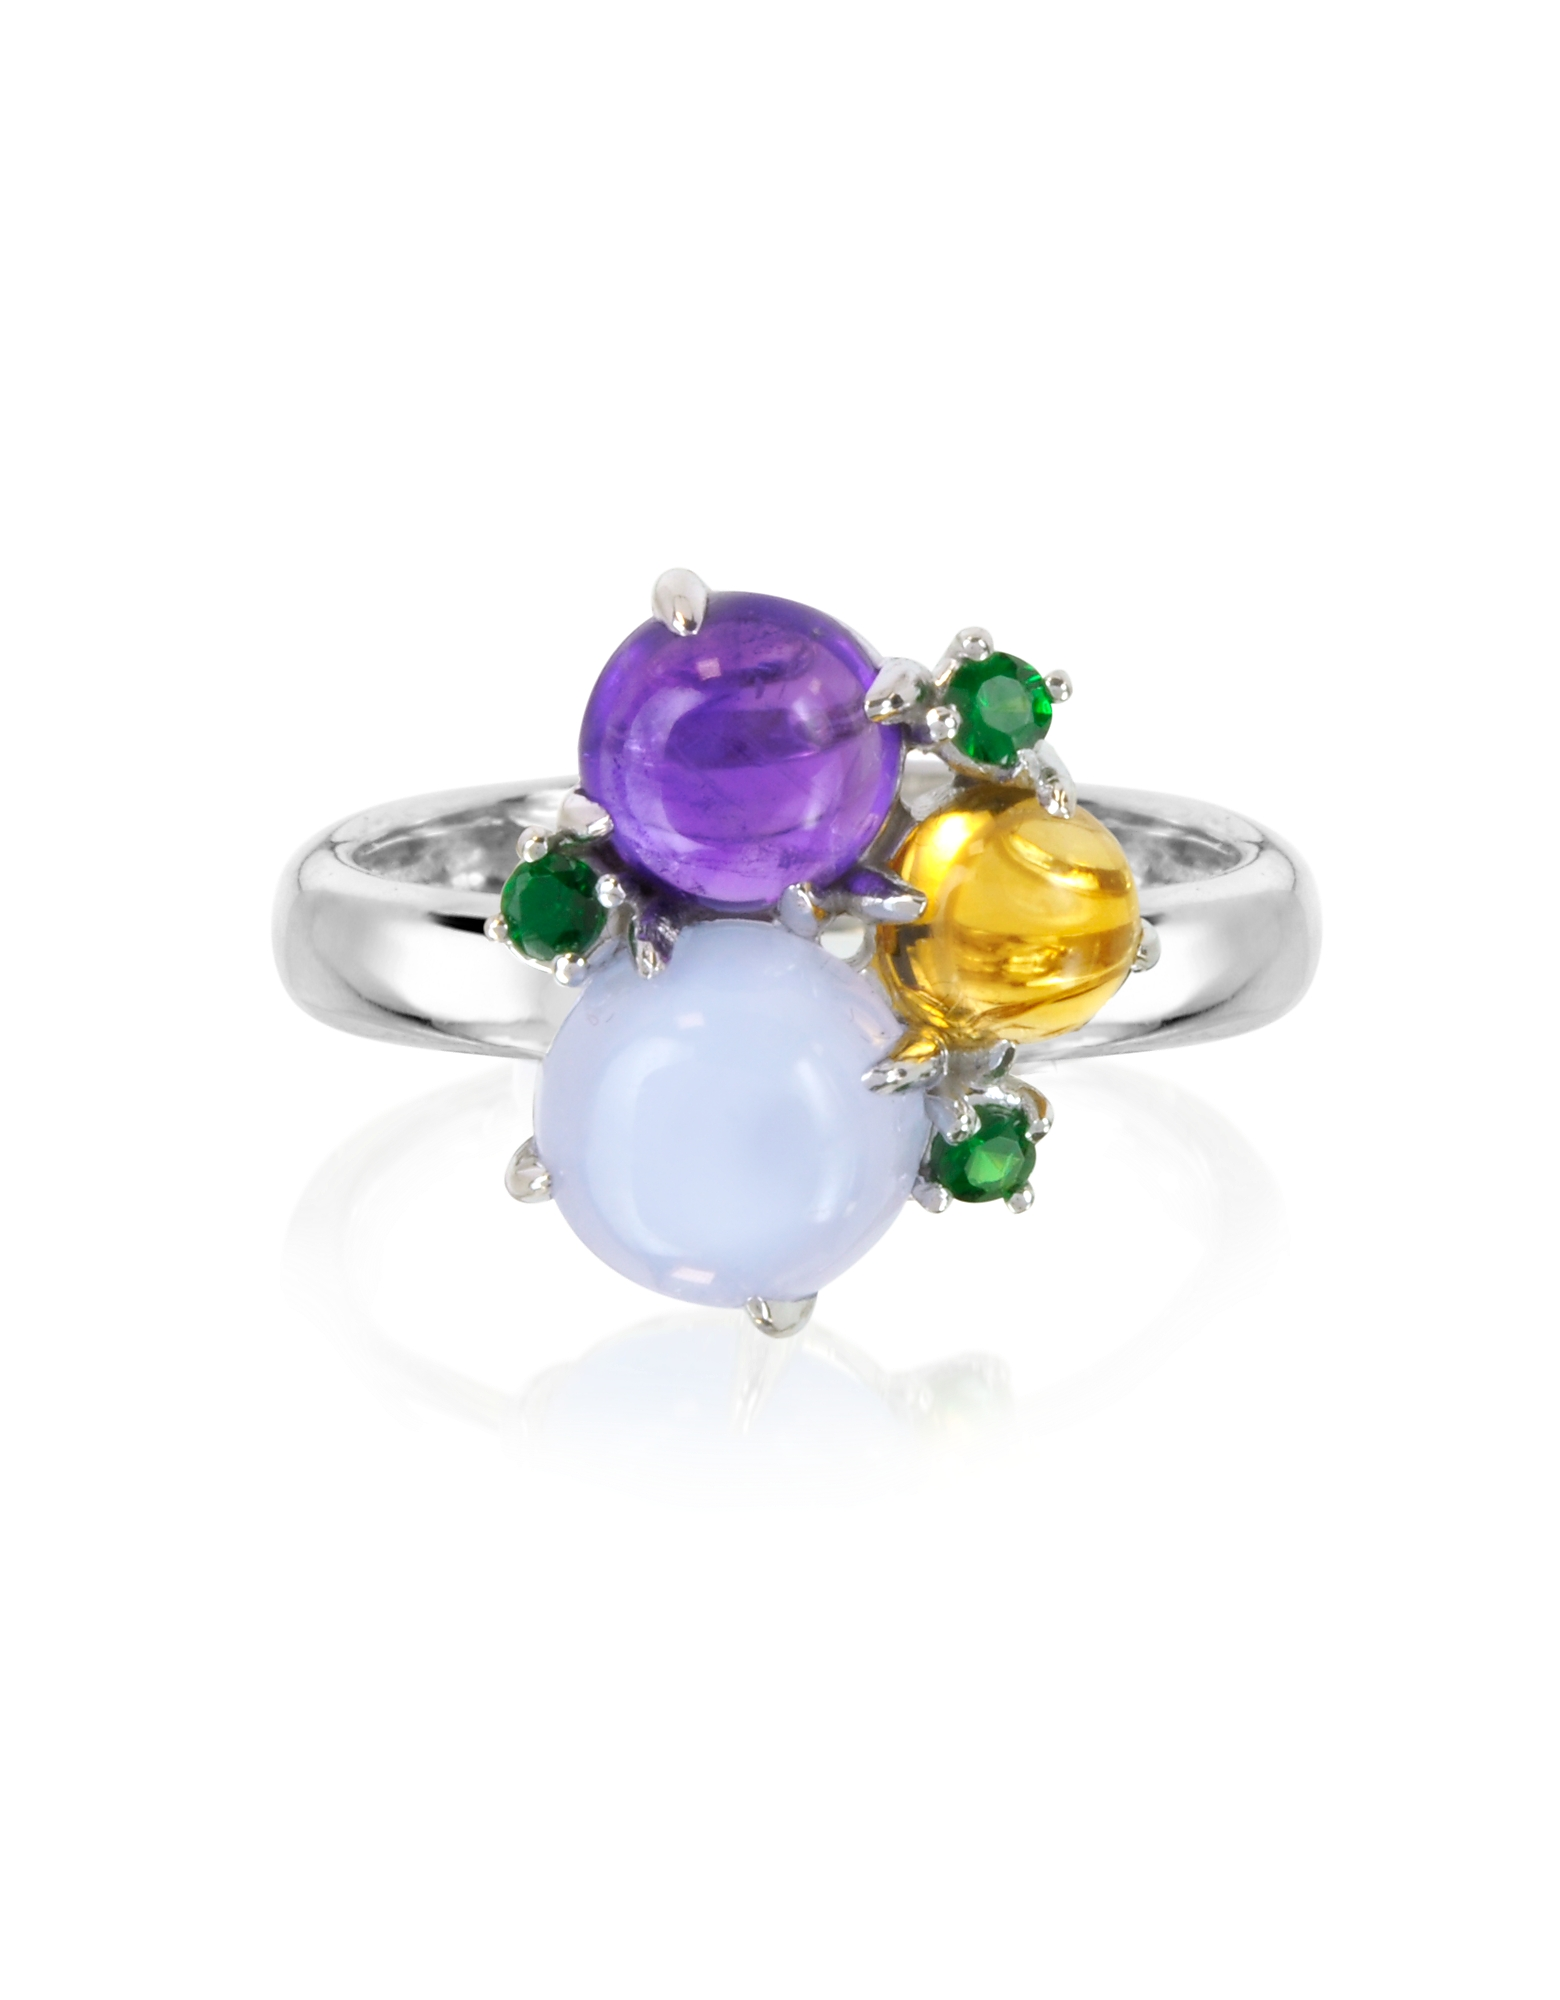 Mia & Beverly Rings, Gemstones 18K White Gold Ring